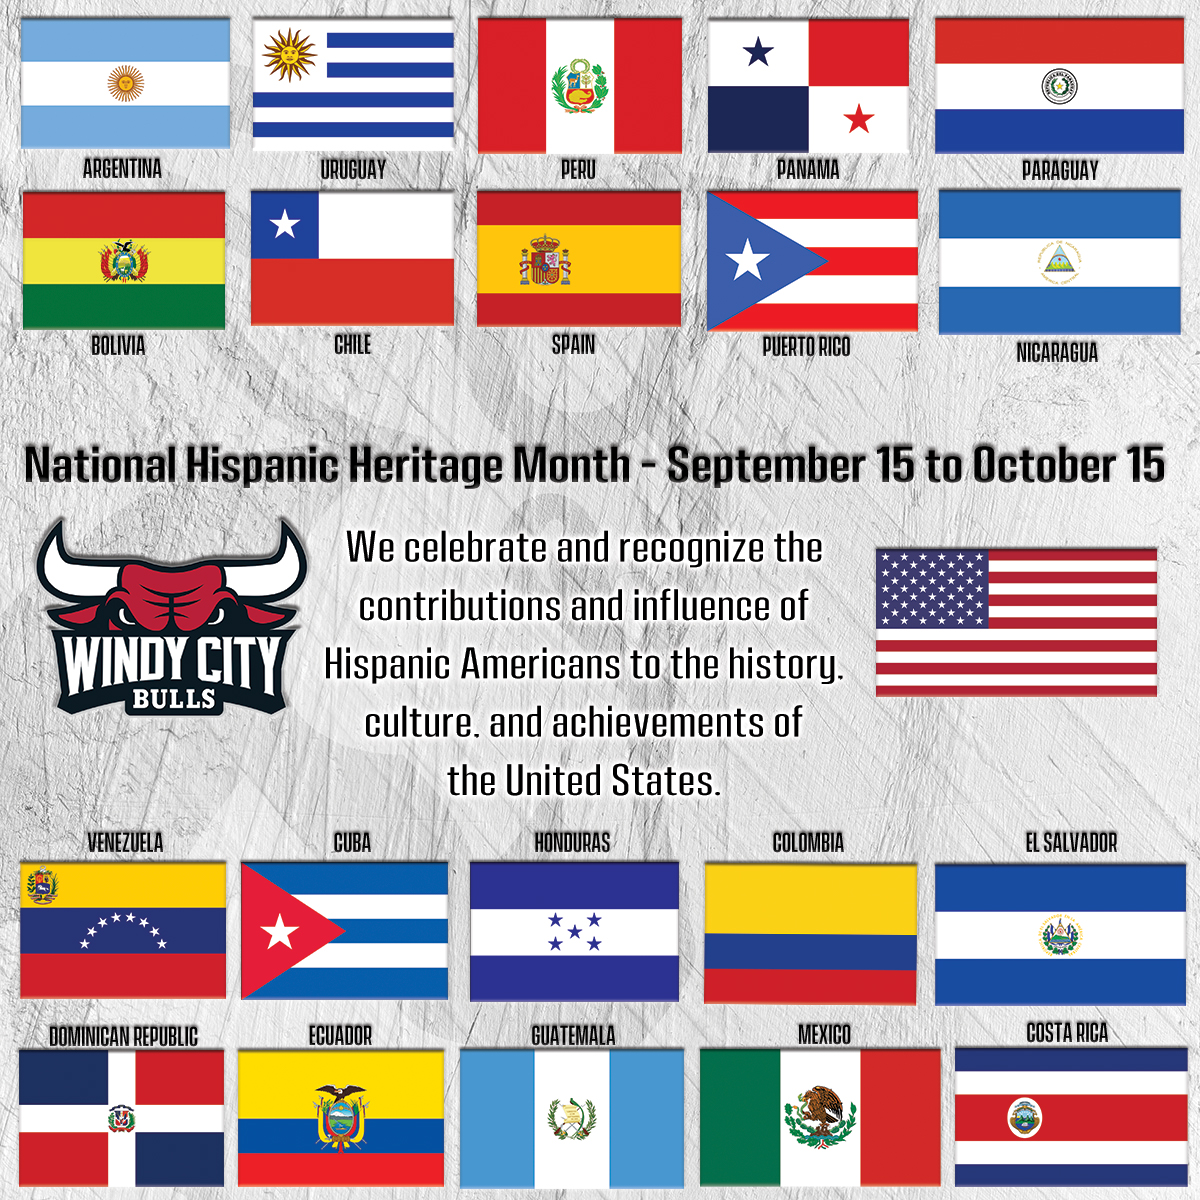 Tomorrow kicks off Hispanic Heritage Month!   Let us know in the replies how you celebrate, as well as what you'd like to see at future Windy City Bulls Hispanic Heritage Nights!  Reply for your chance to win a Los Toros Sugar Skull T-Shirt!  #HispanicHeritageMonth  #NBATogether https://t.co/xXSWN6FCRG